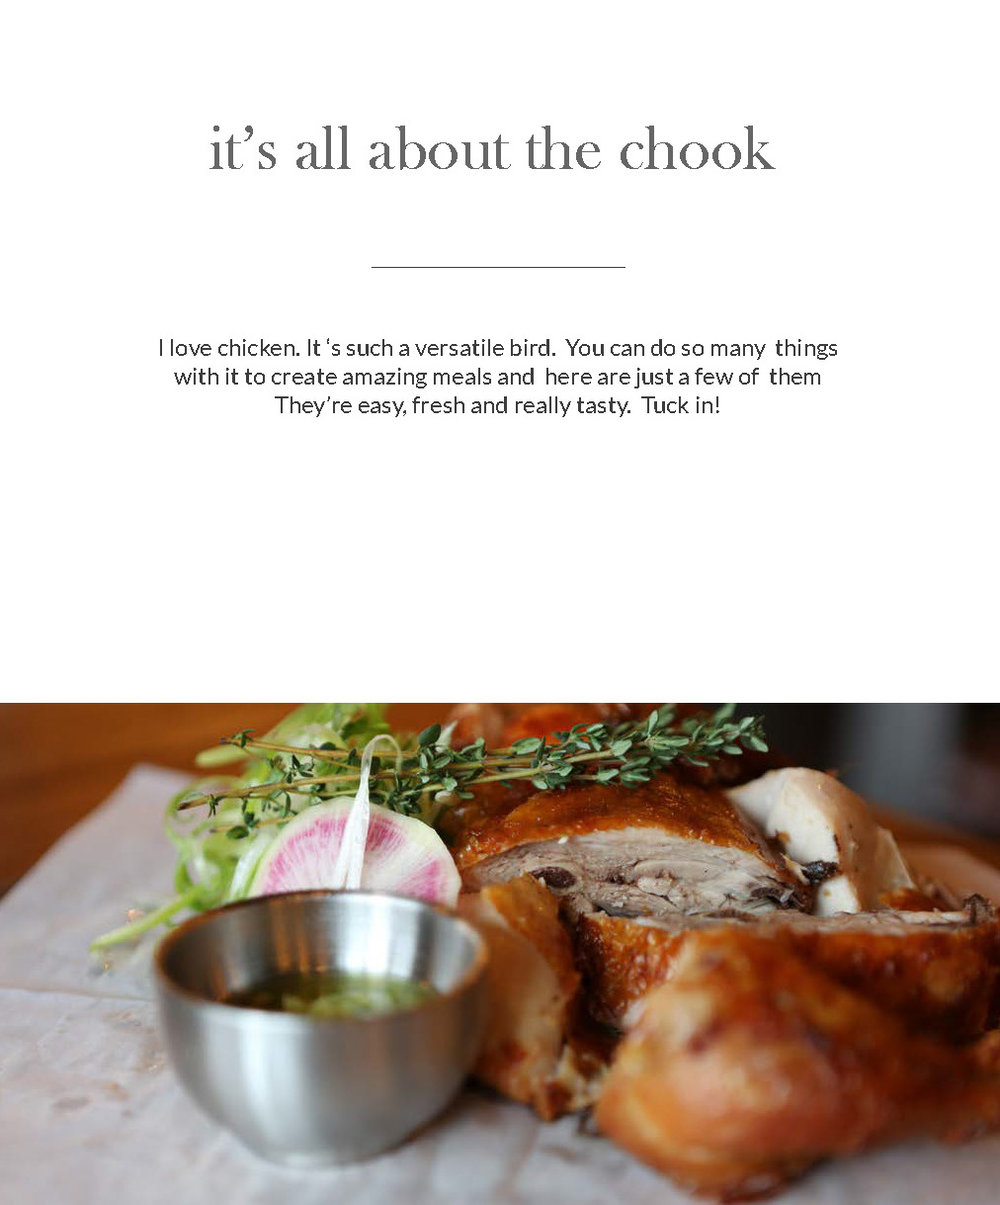 All about the Chook_01.jpg